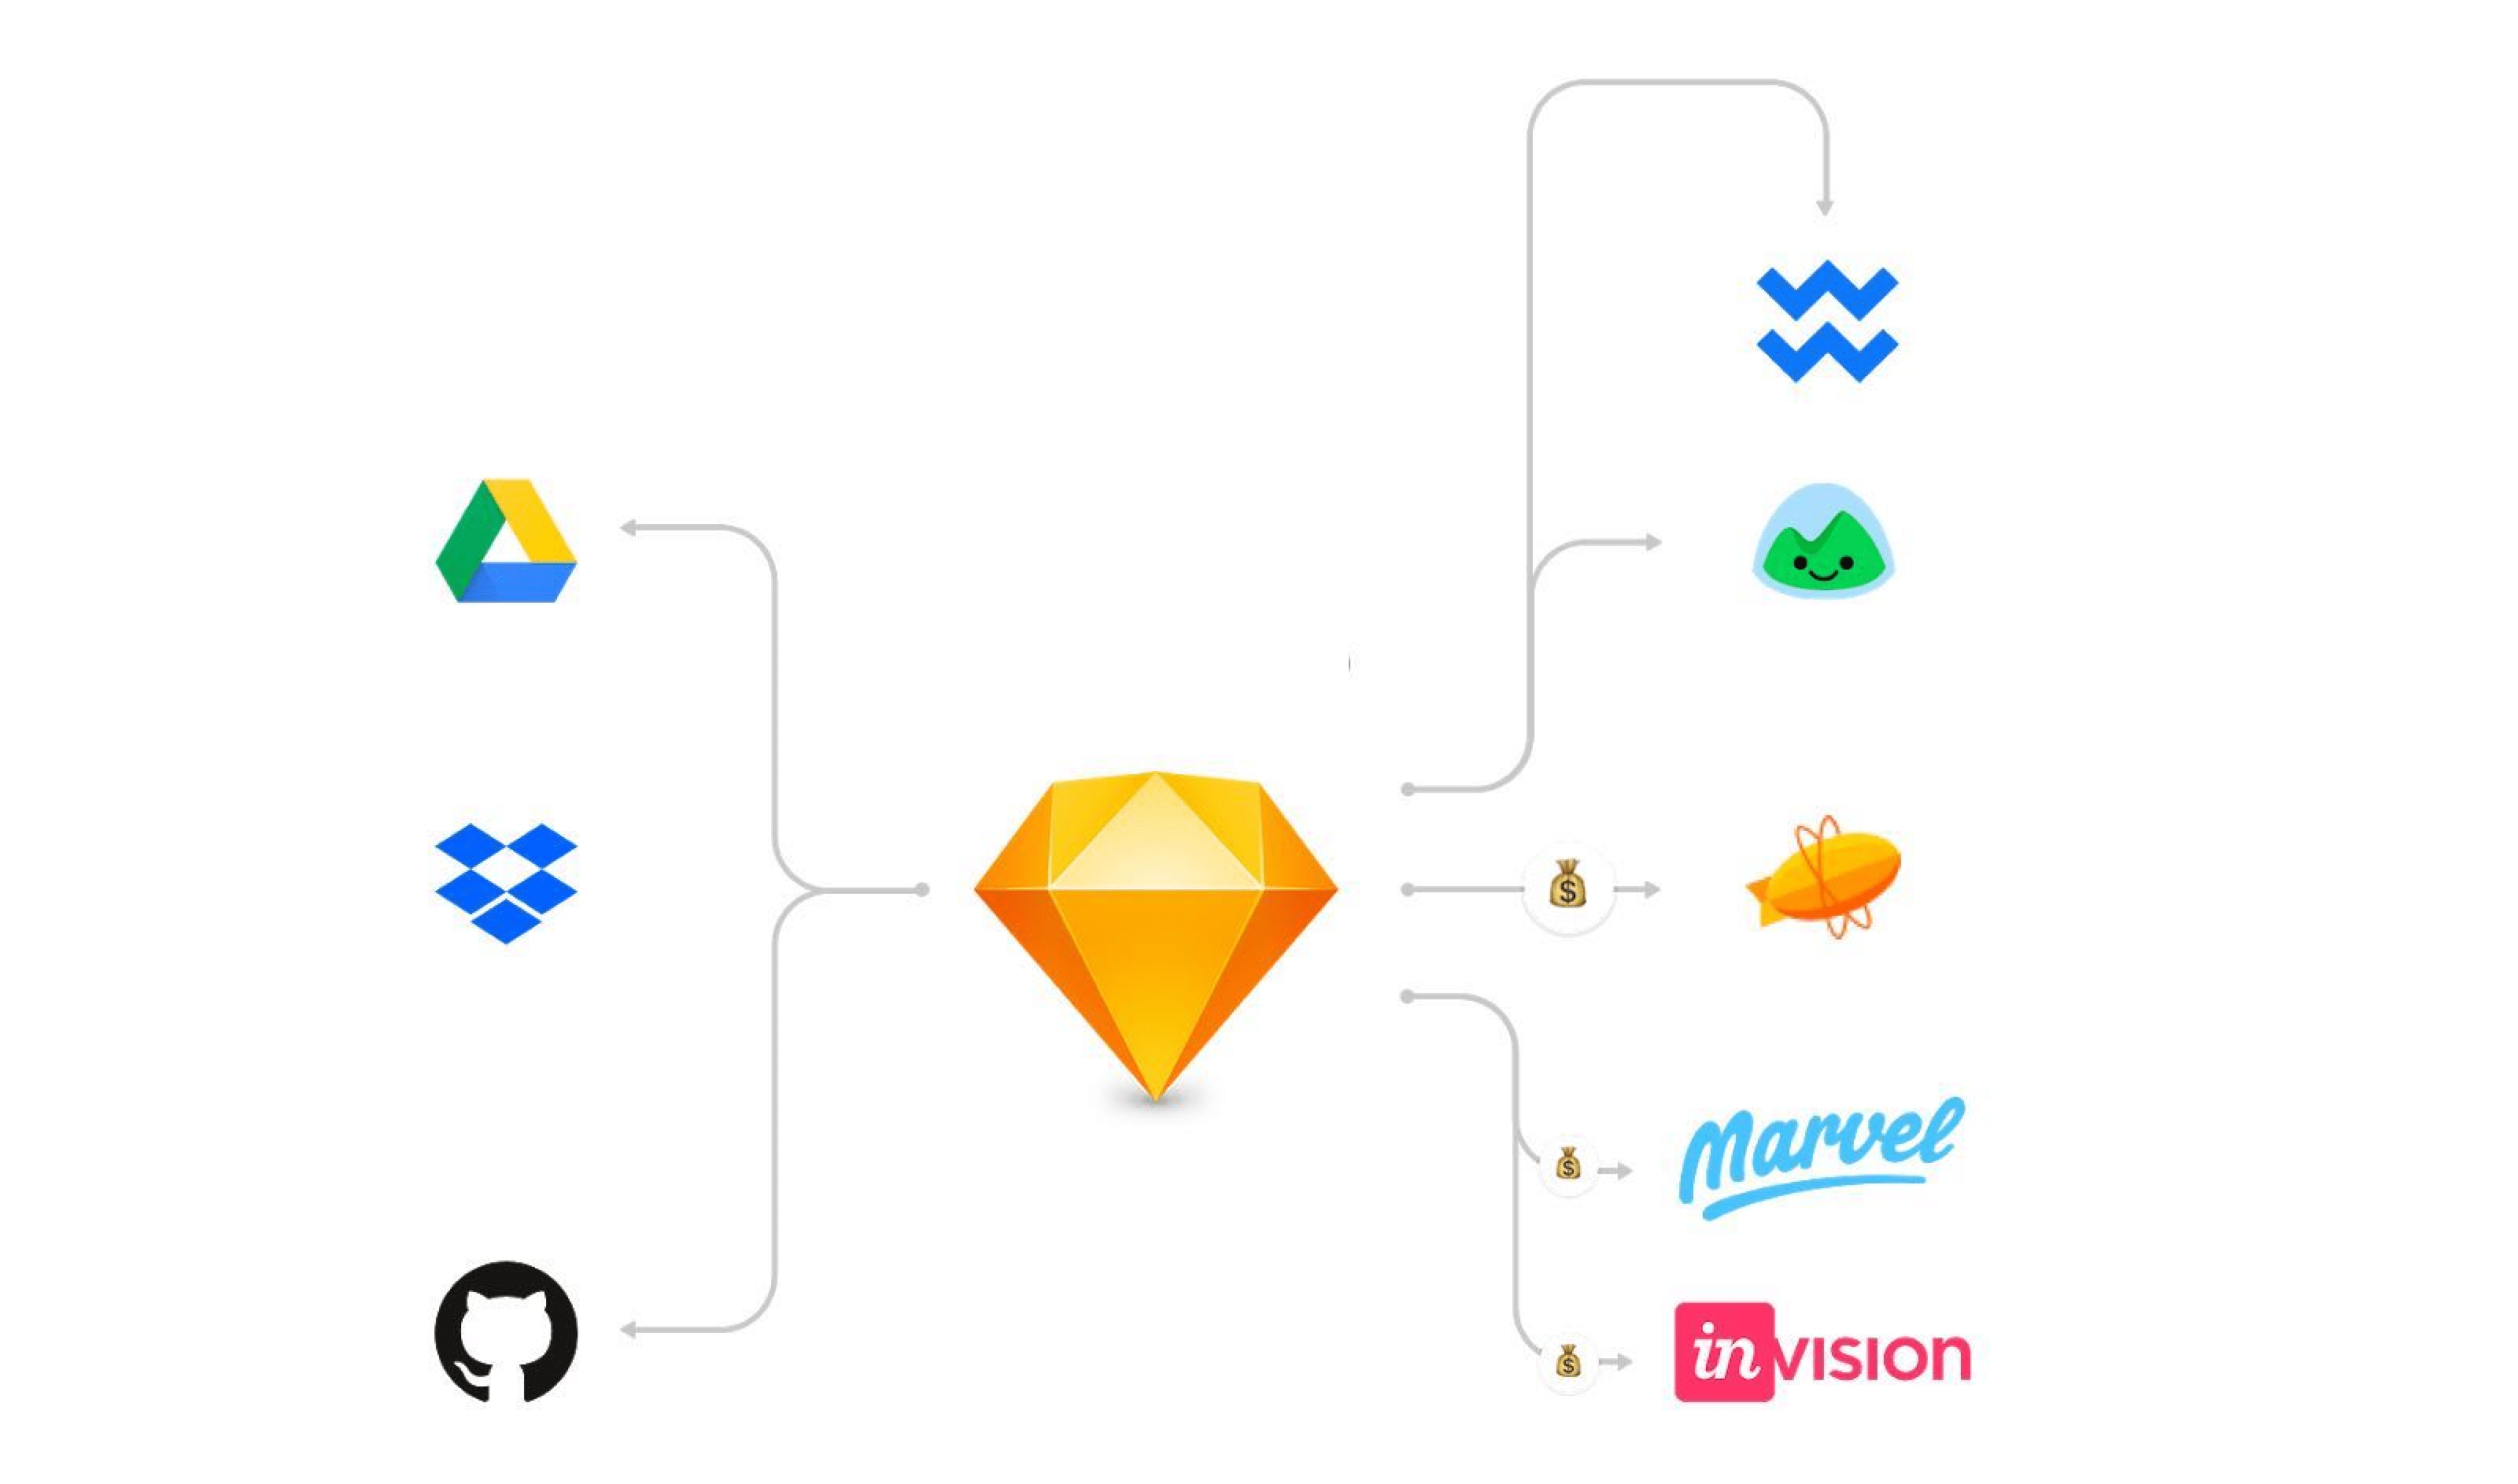 Design ecosystem for Sketch